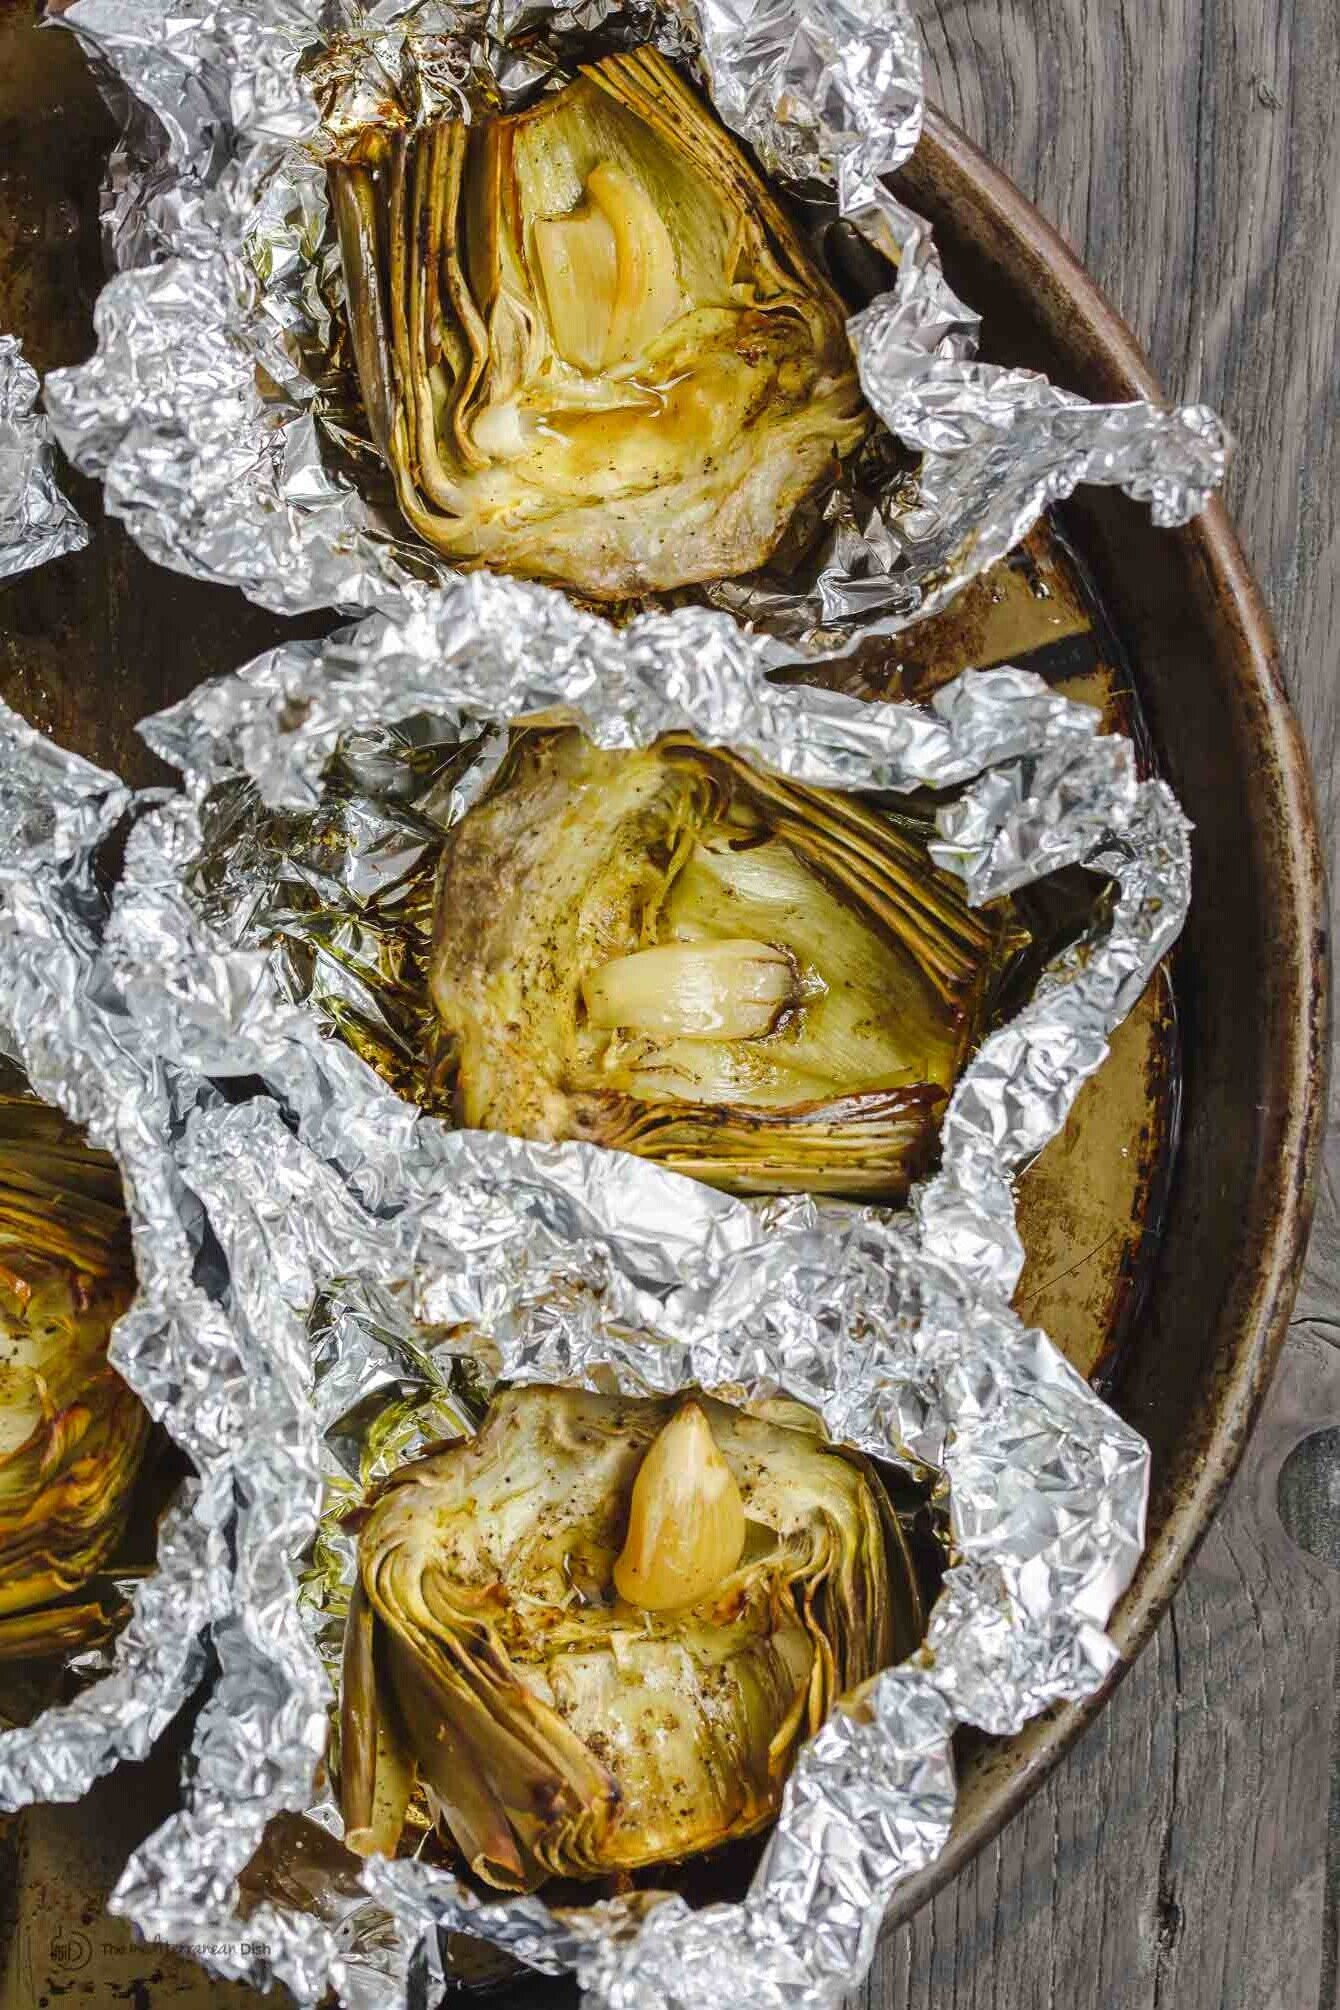 roasted artichoke halves in foil with garlic in the middle